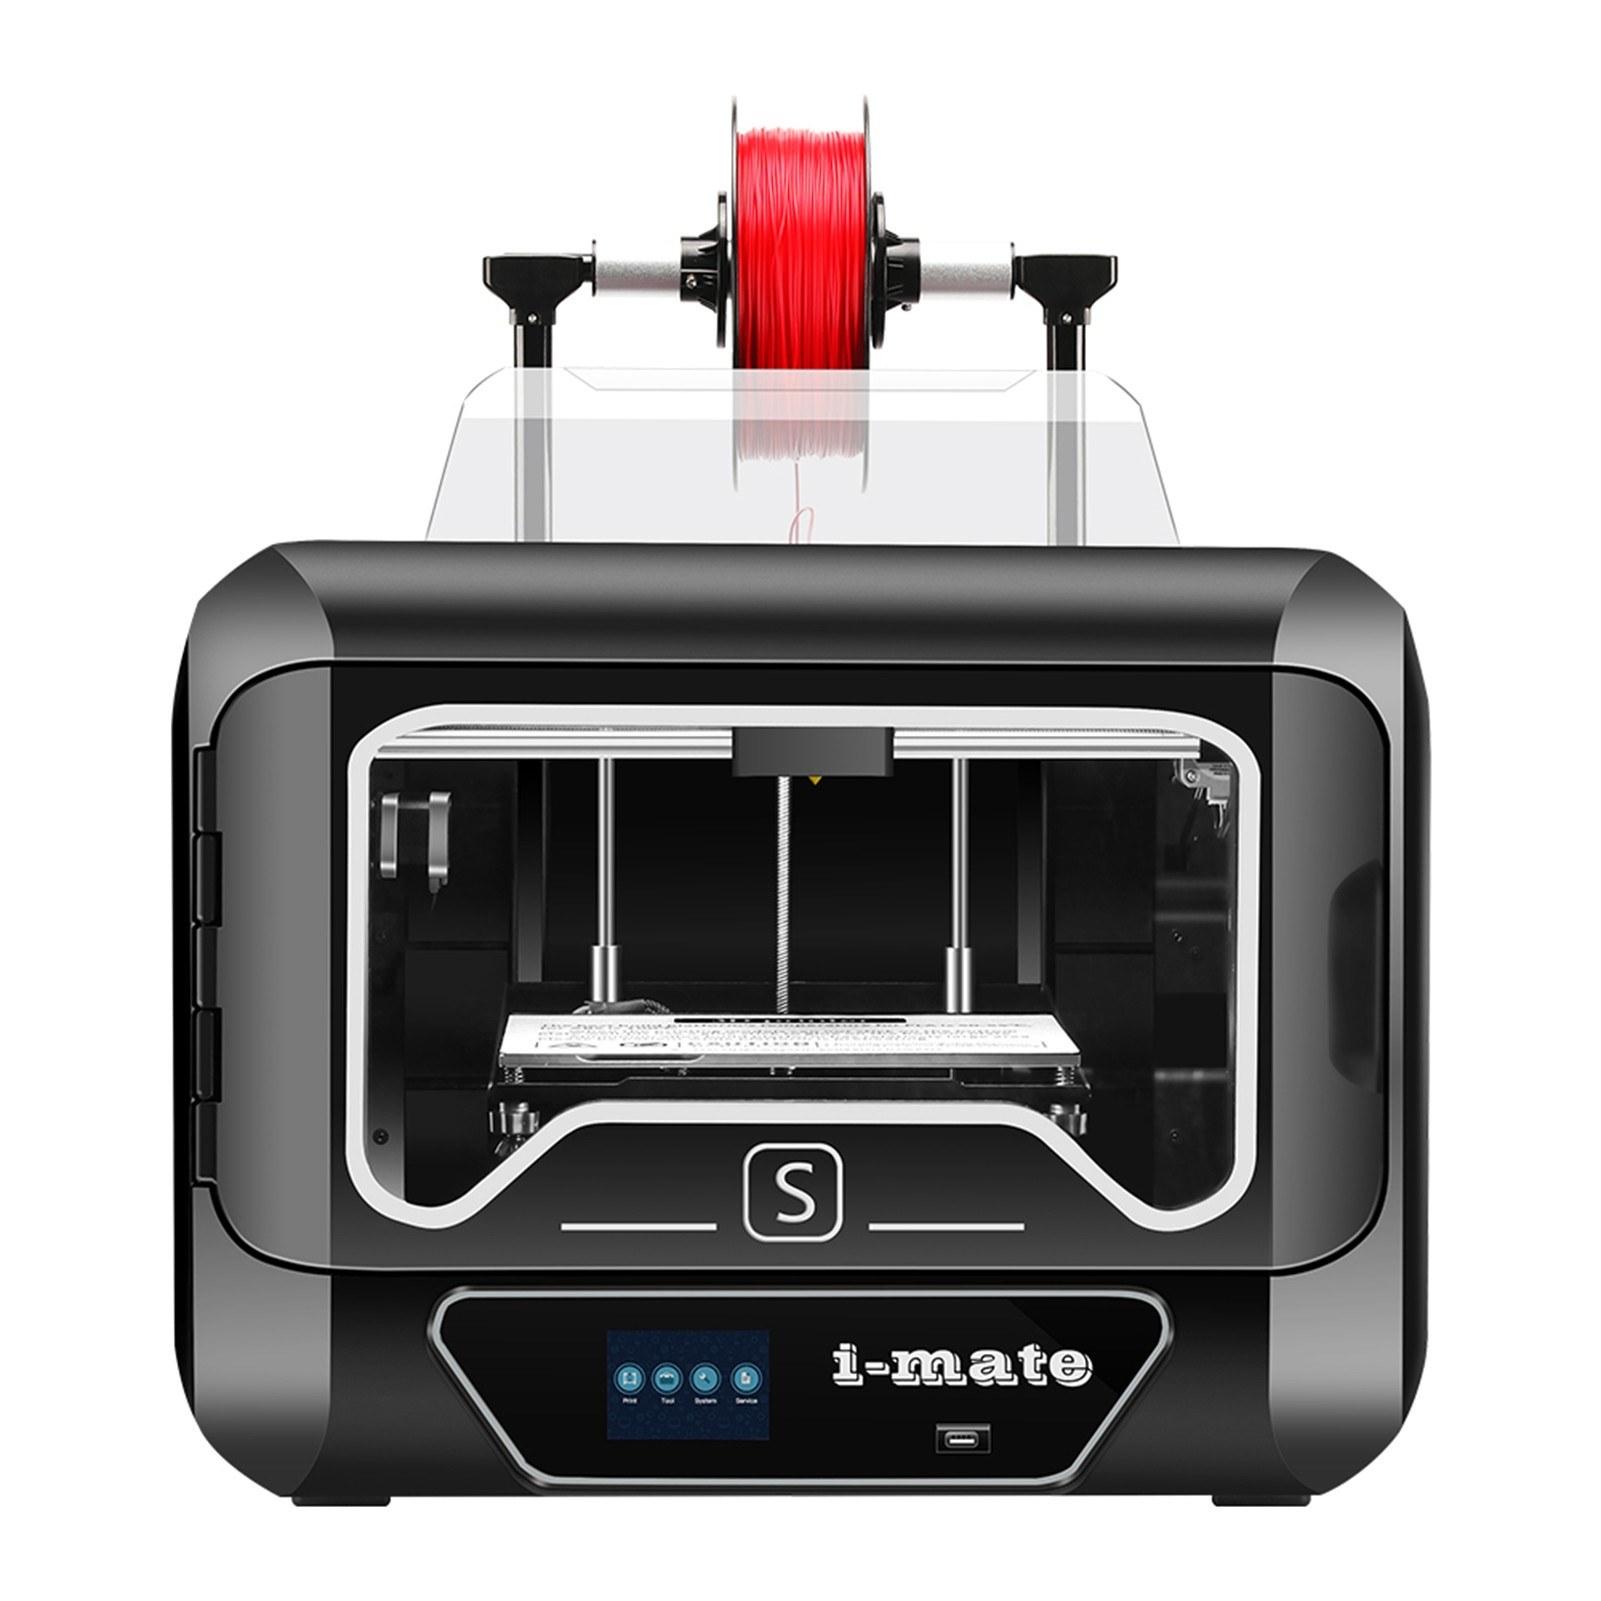 Tomtop - [US Warehouse] 43% OFF QIDI TECH i-mates Full Assembled 3D Printer with 3.5 Inch Touchscreen, $499.99